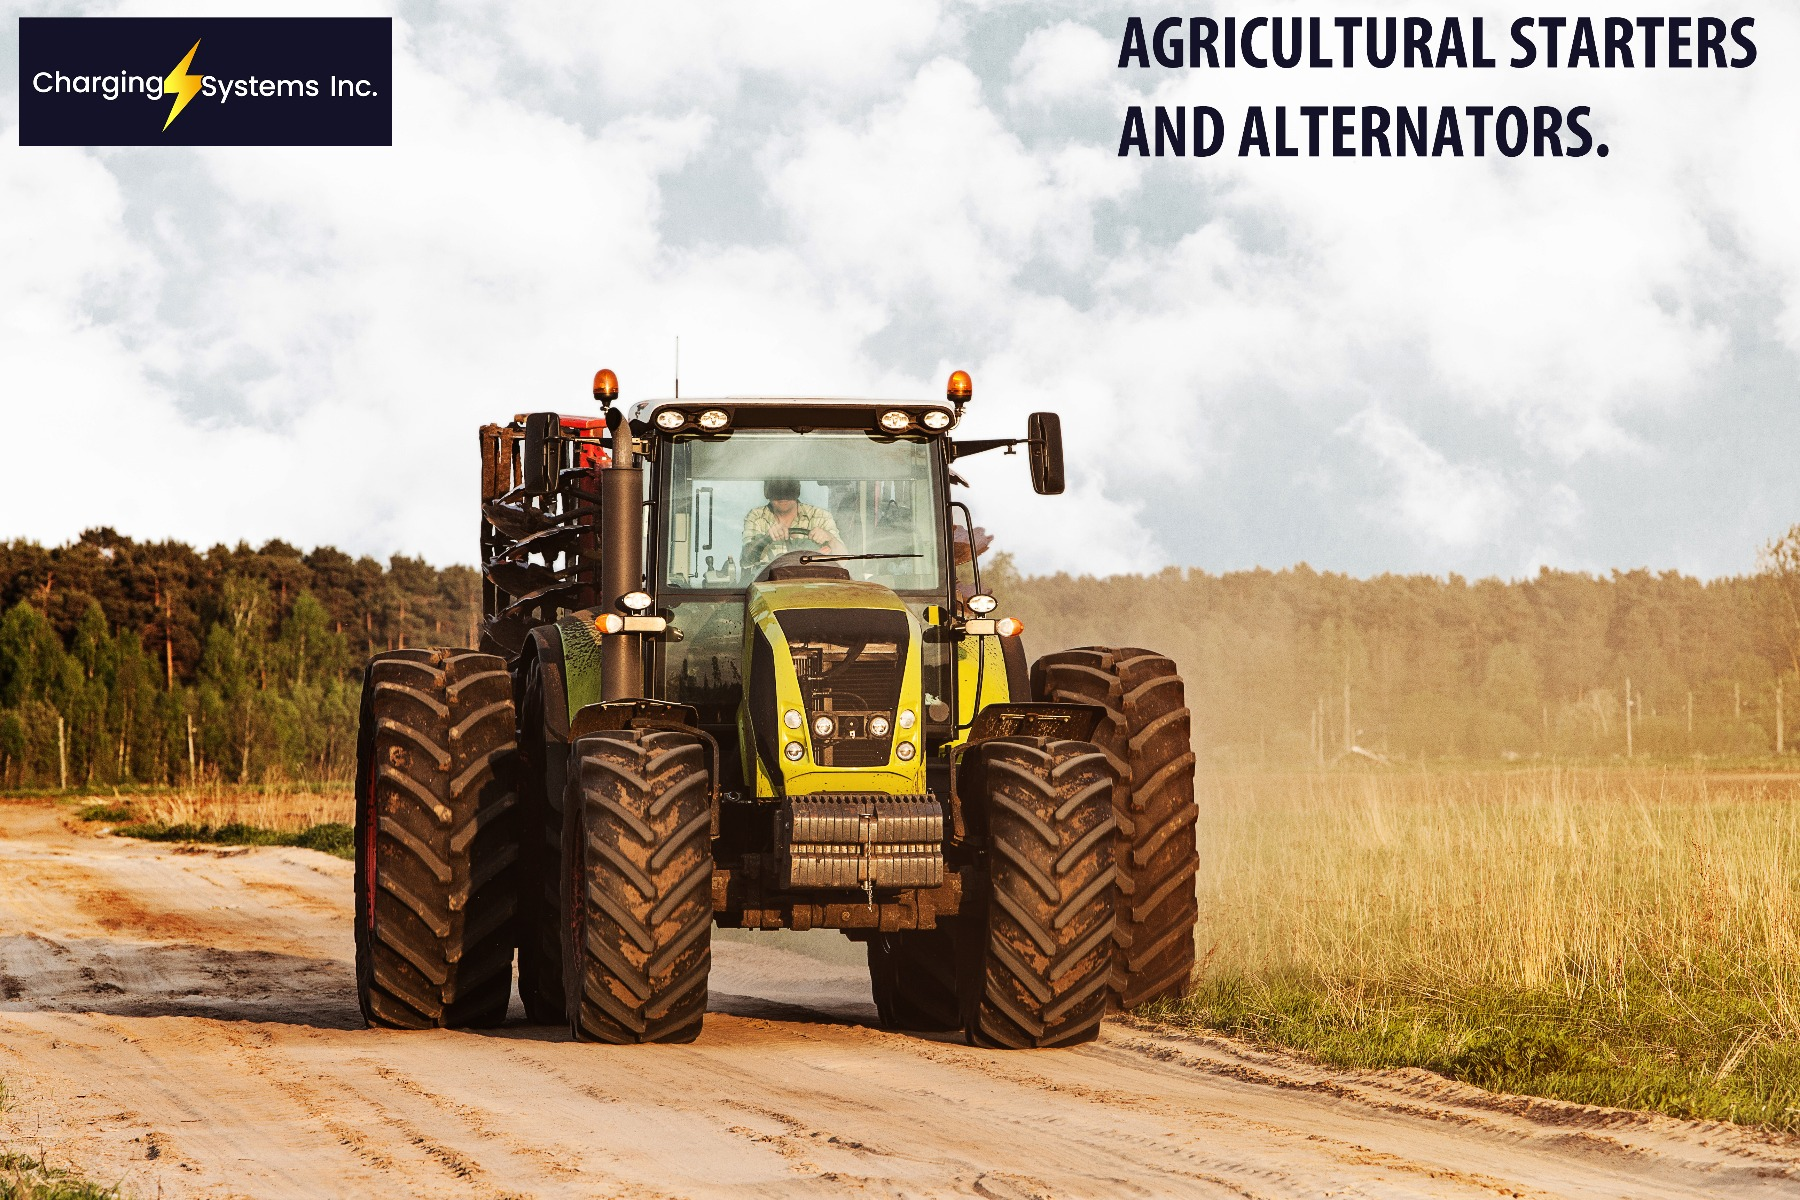 Agricultural Tractor Starters And Alternators